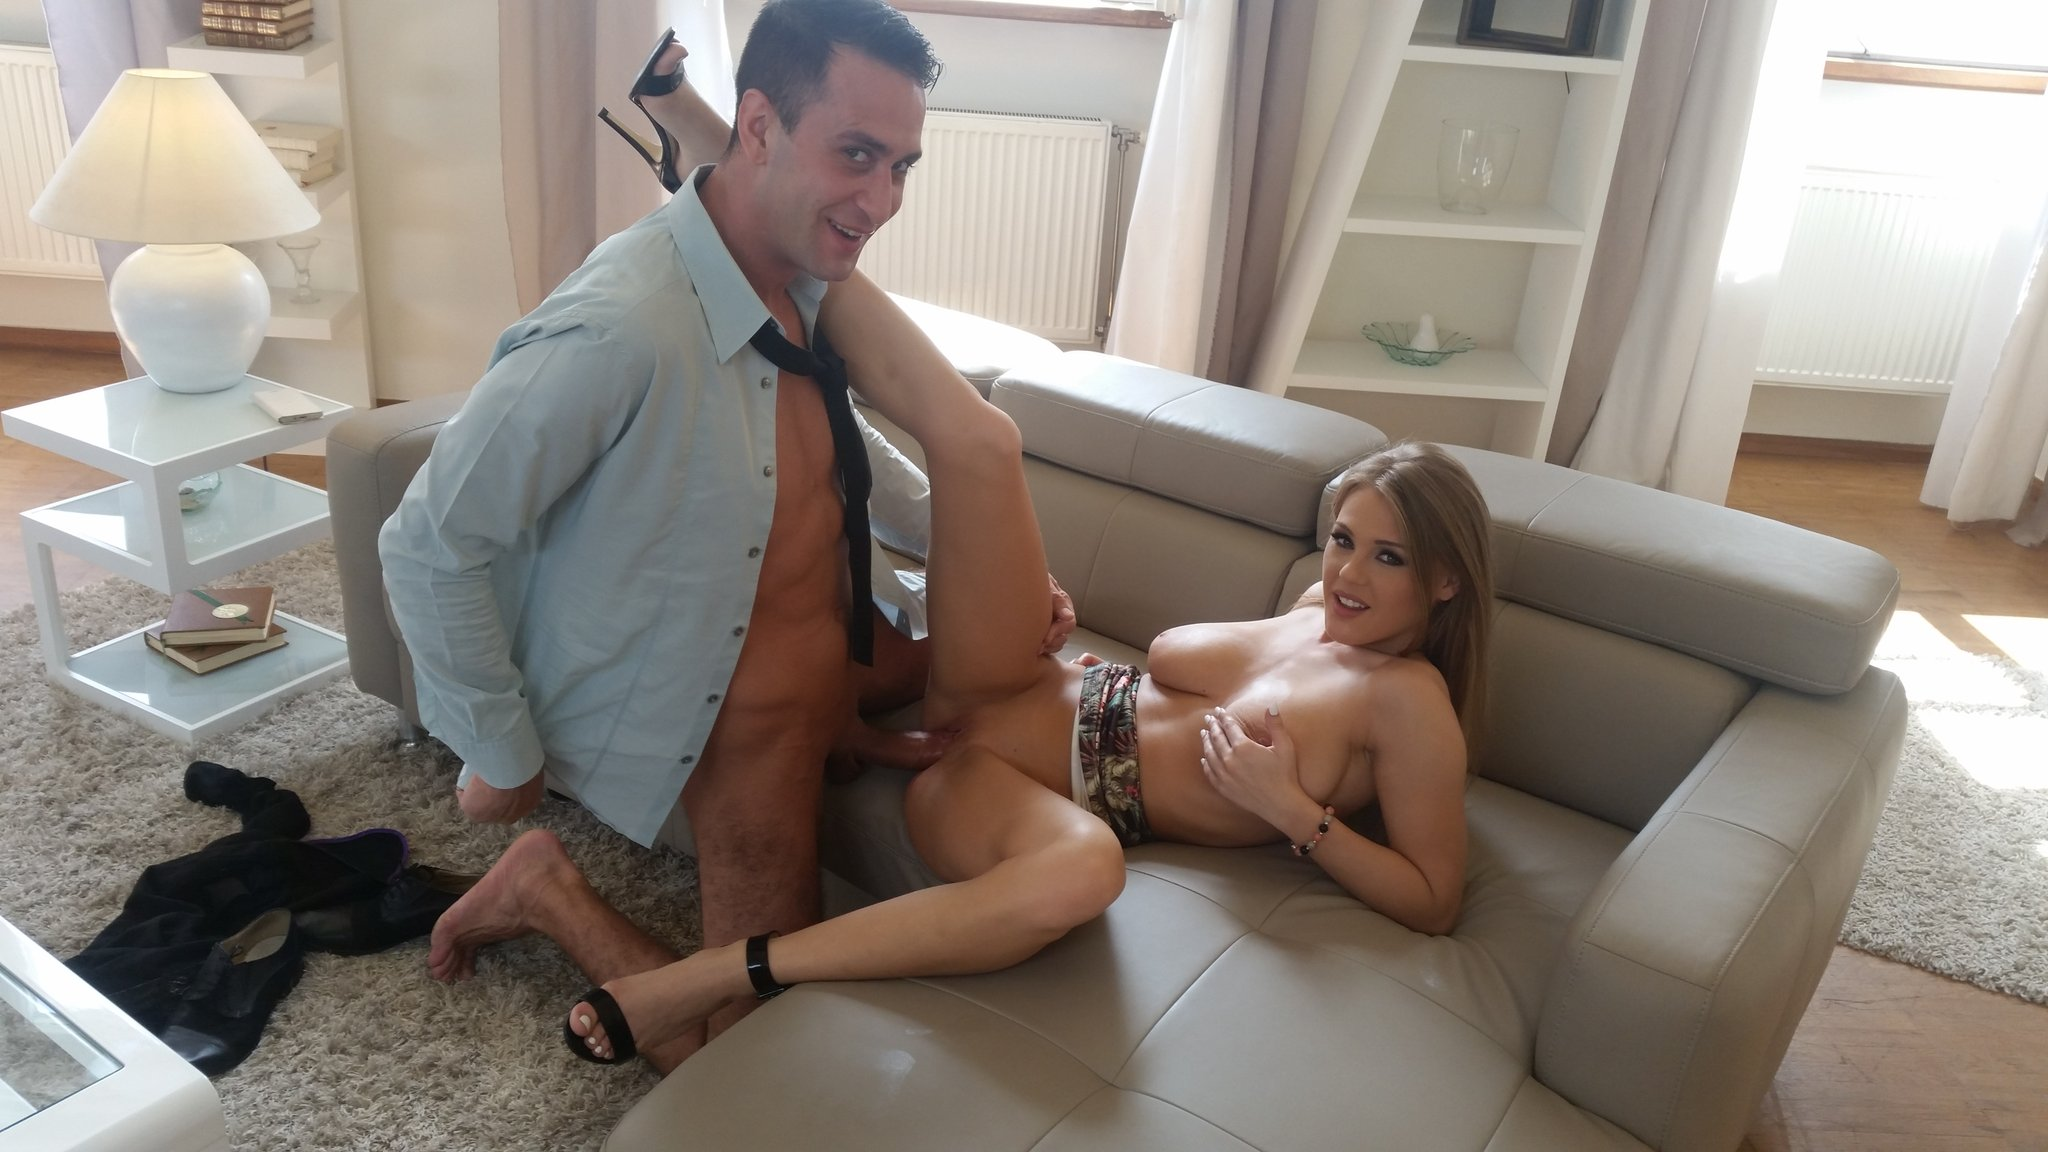 Viola Baileys fucked by Kai Taylor behind the scenes for DDF